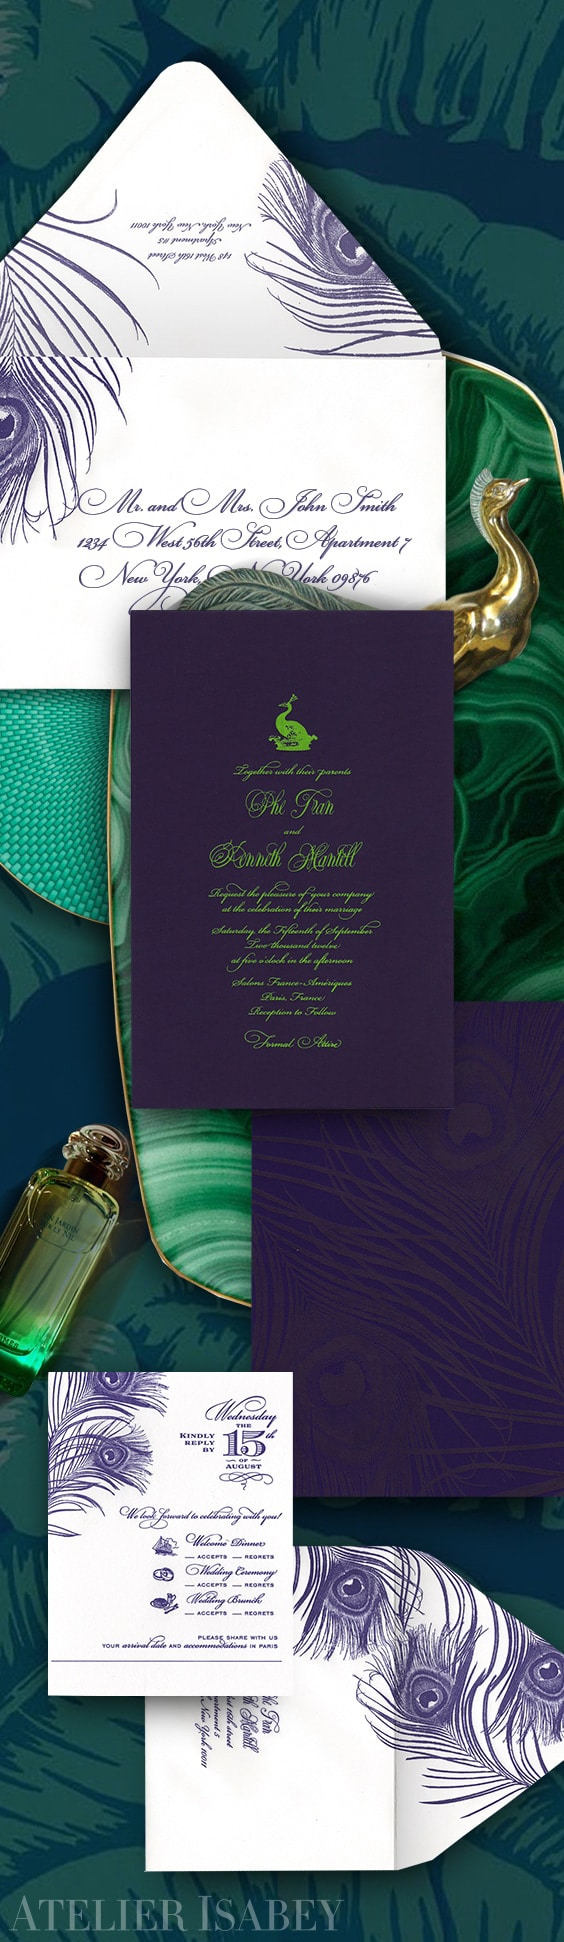 Peacock feather contemporary meets classic wedding invitation | By Atelier Isabey